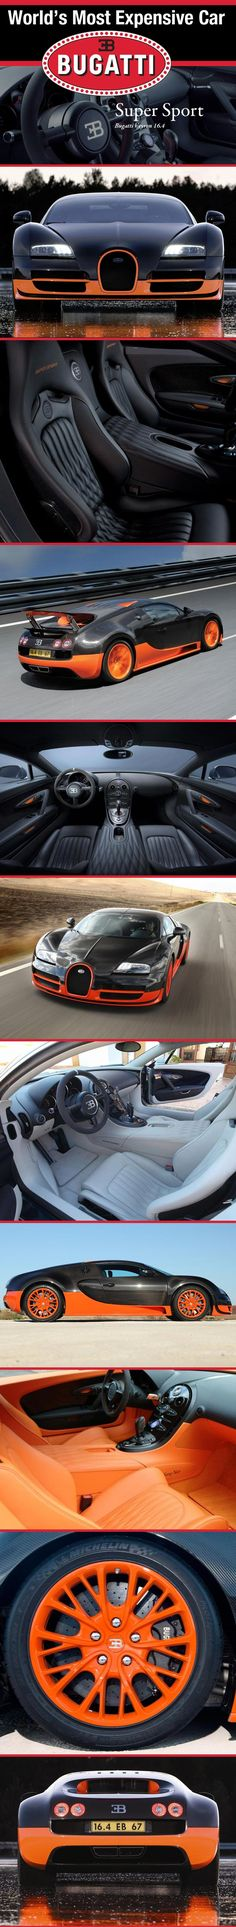 Bugatti Veyron Super Sports --- the most horsepower, the fastest top speed and acceleration -- and -- most expensive .:. .:. image credit:  http://www.worldsmostexpensivecar.com/bugatti-veyron-super-sport/